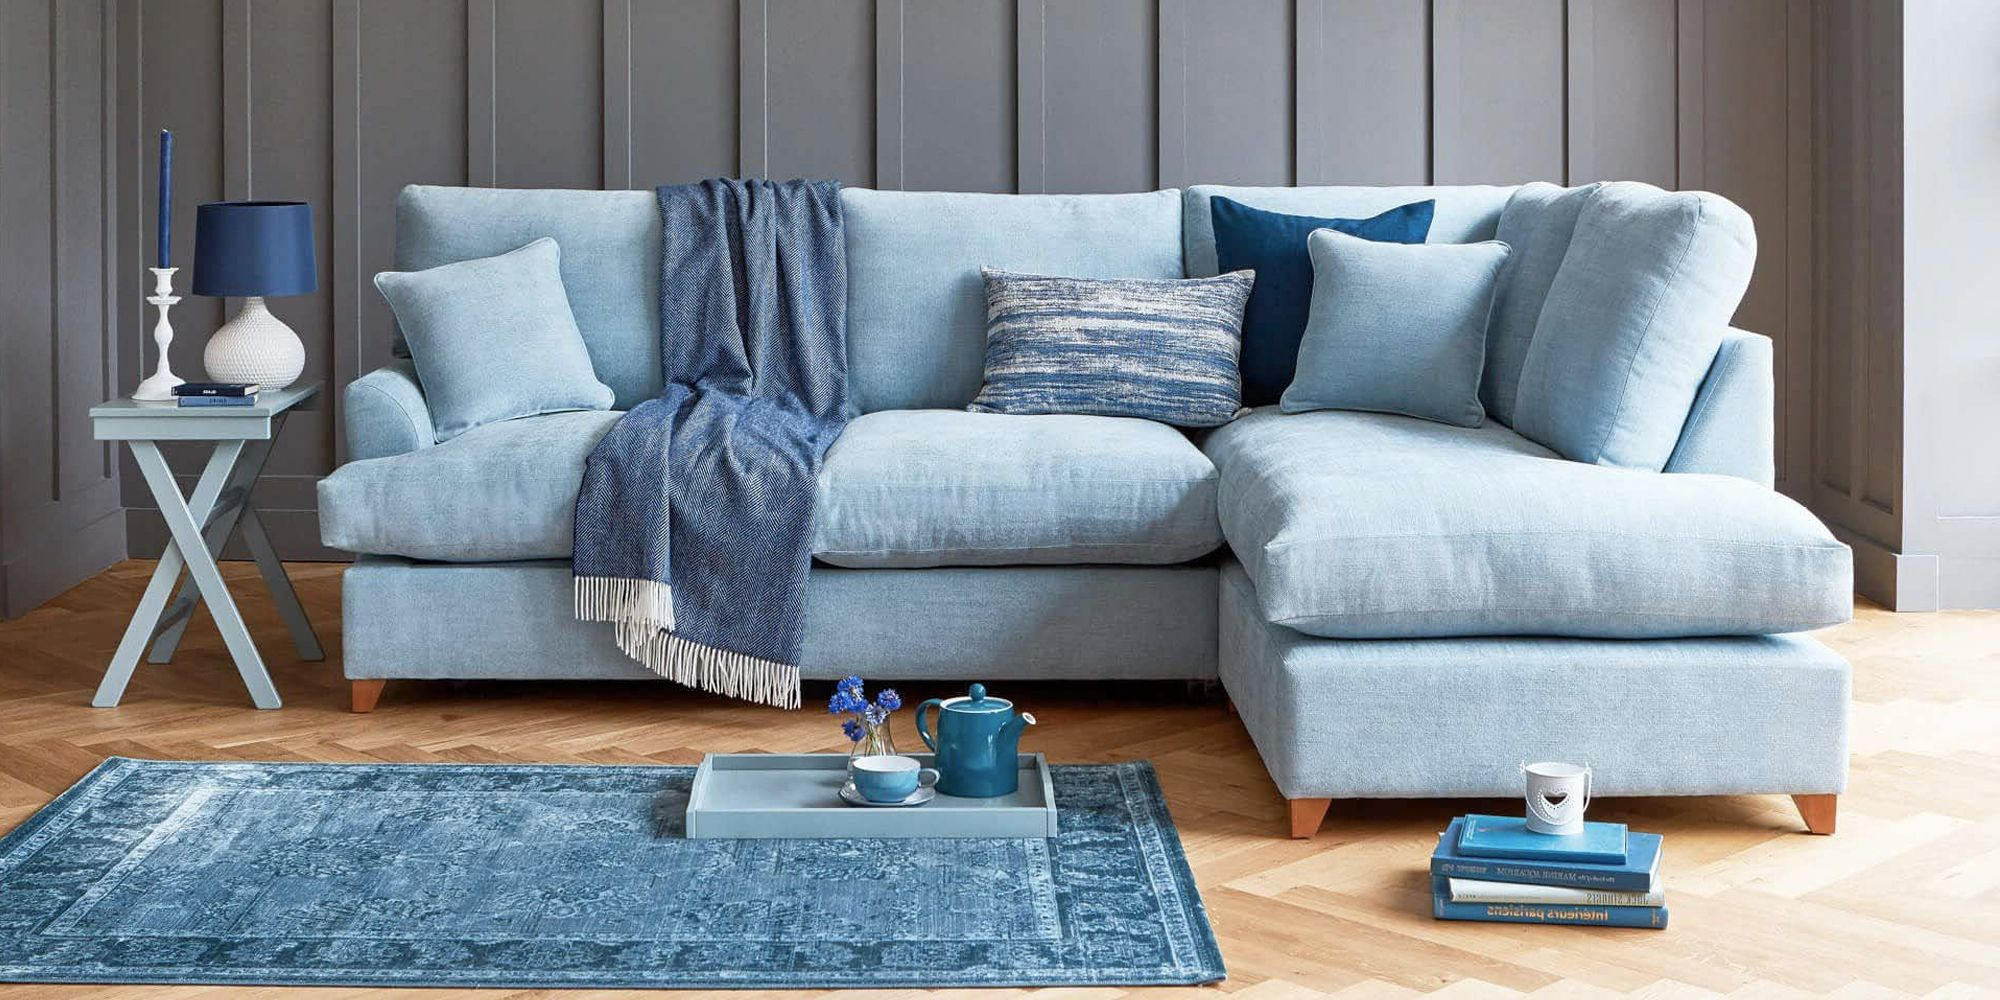 Designer Sofas John Lewis Best Sofa Best Place To Buy A Sofa